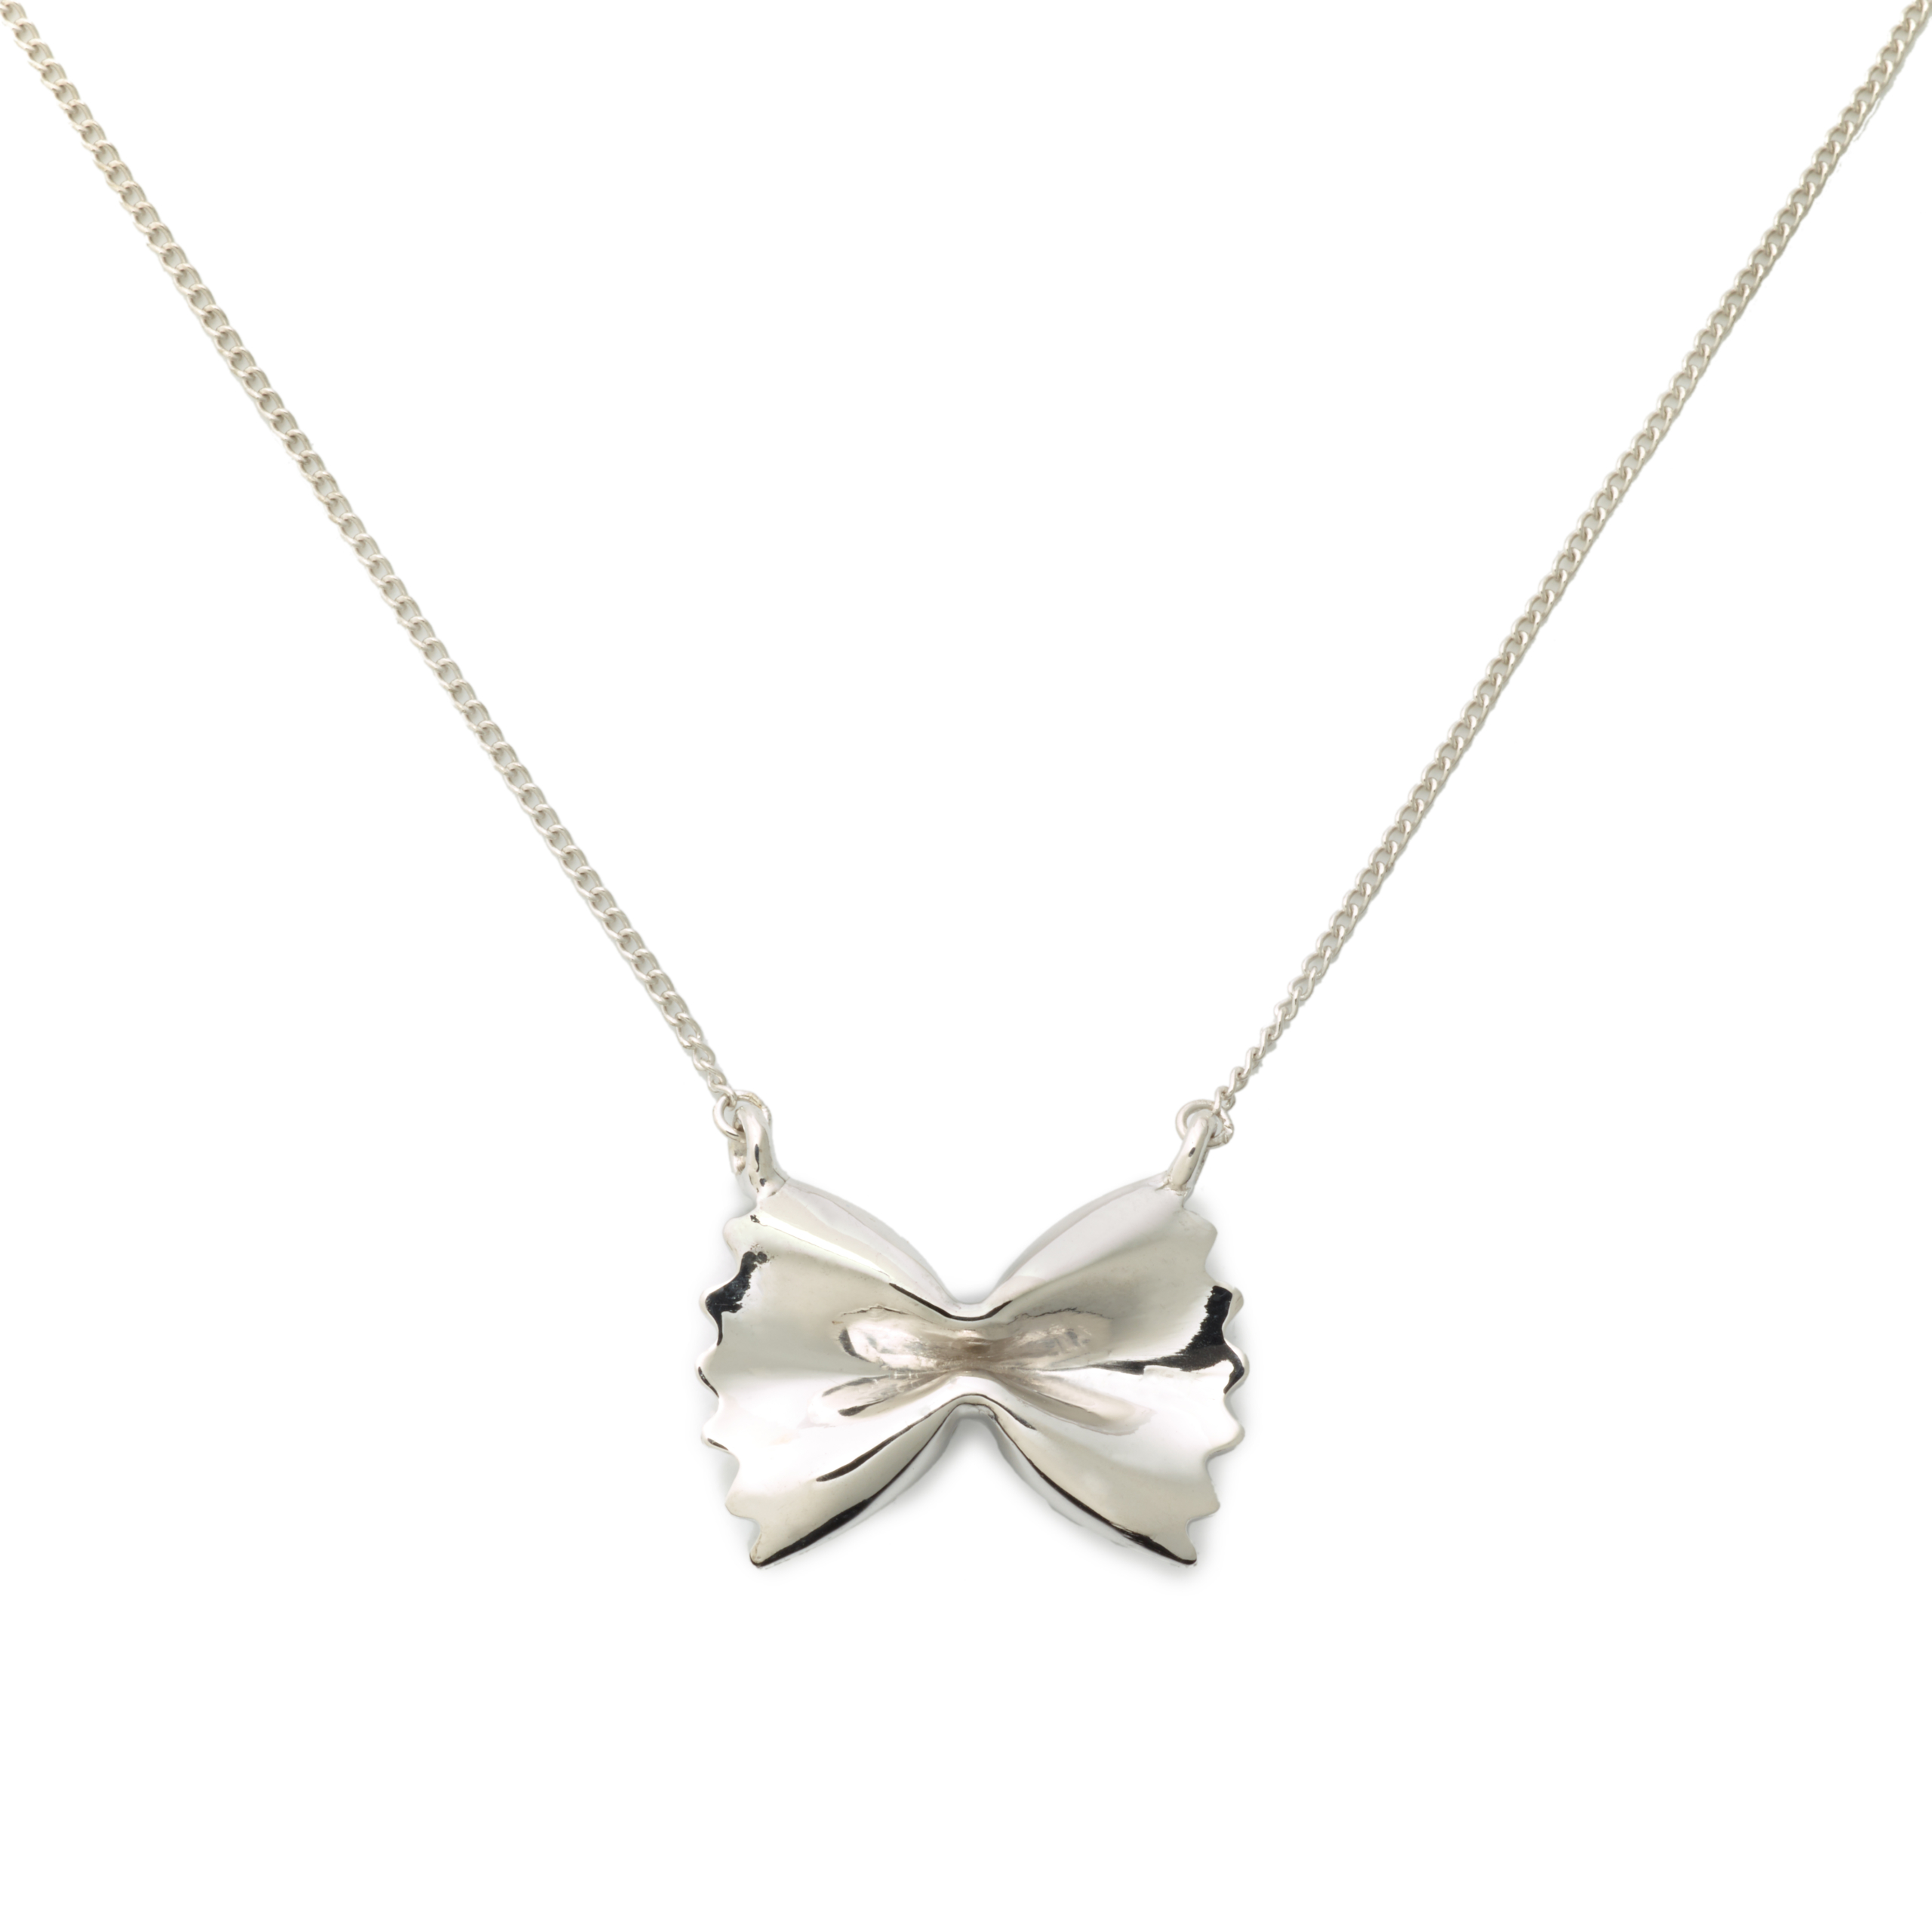 Farfalle Necklace, Sterling Silver